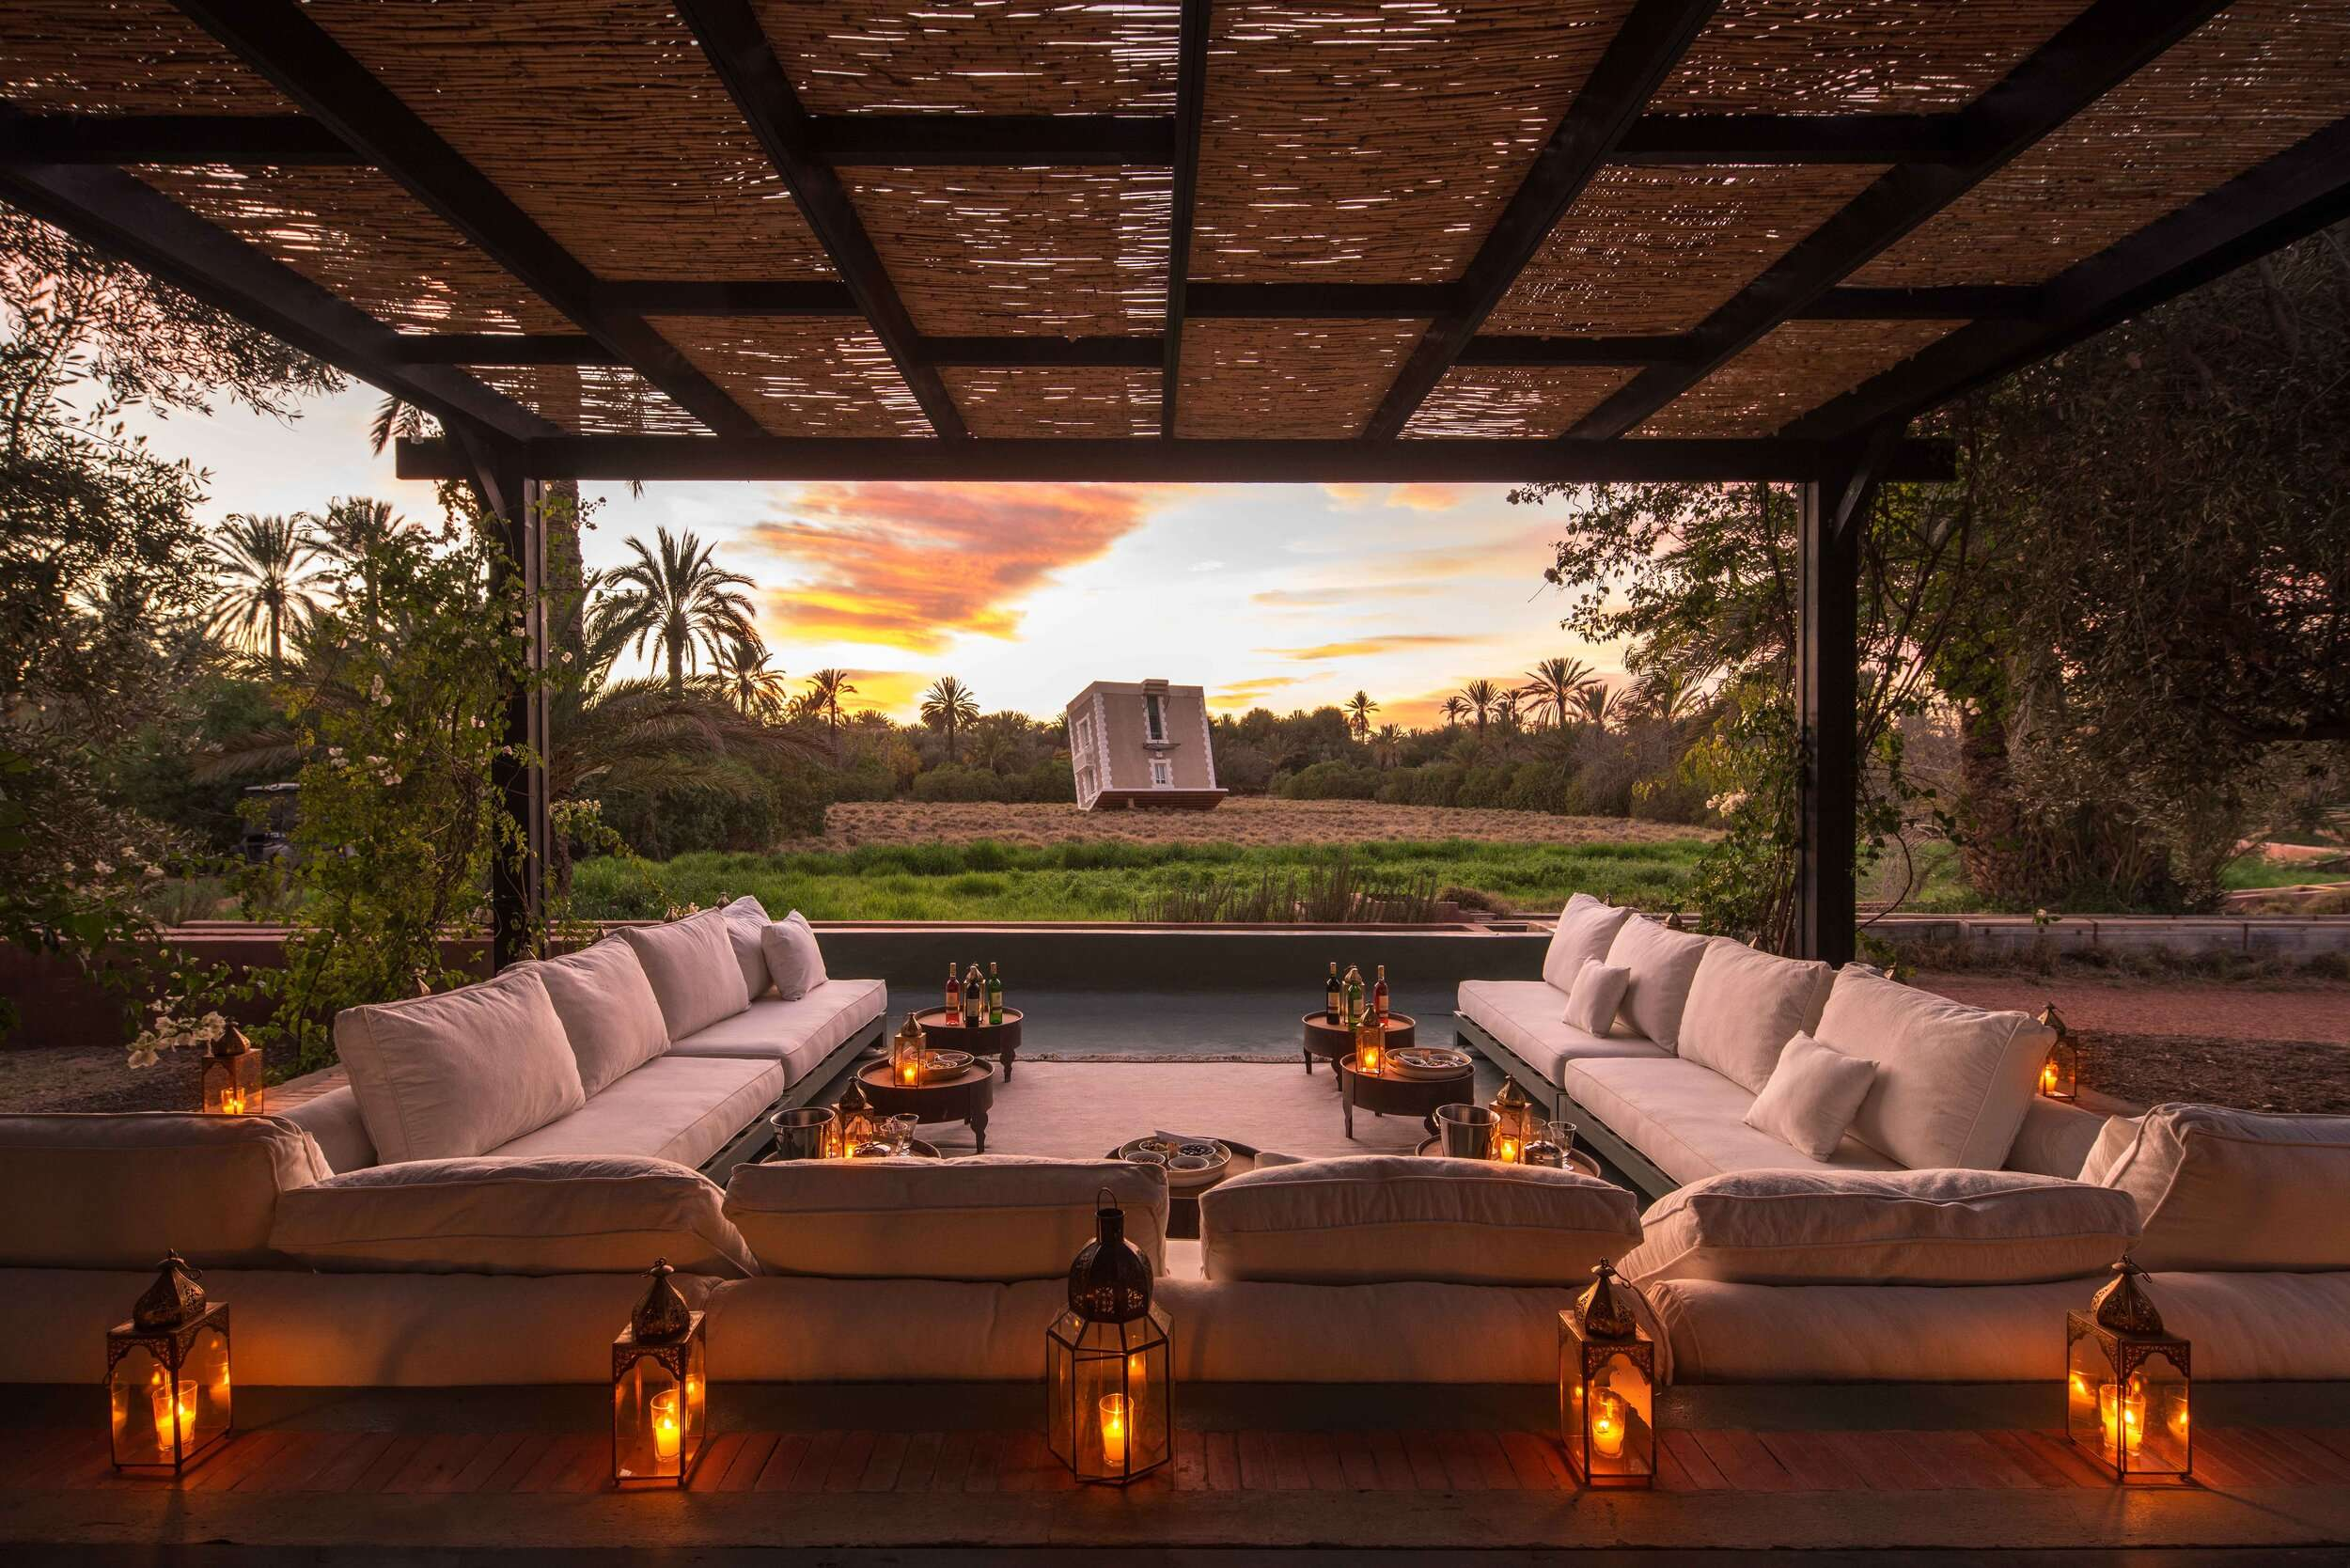 view from Dar el Sadaka outside lounge at sunset, an upside down house in the distance